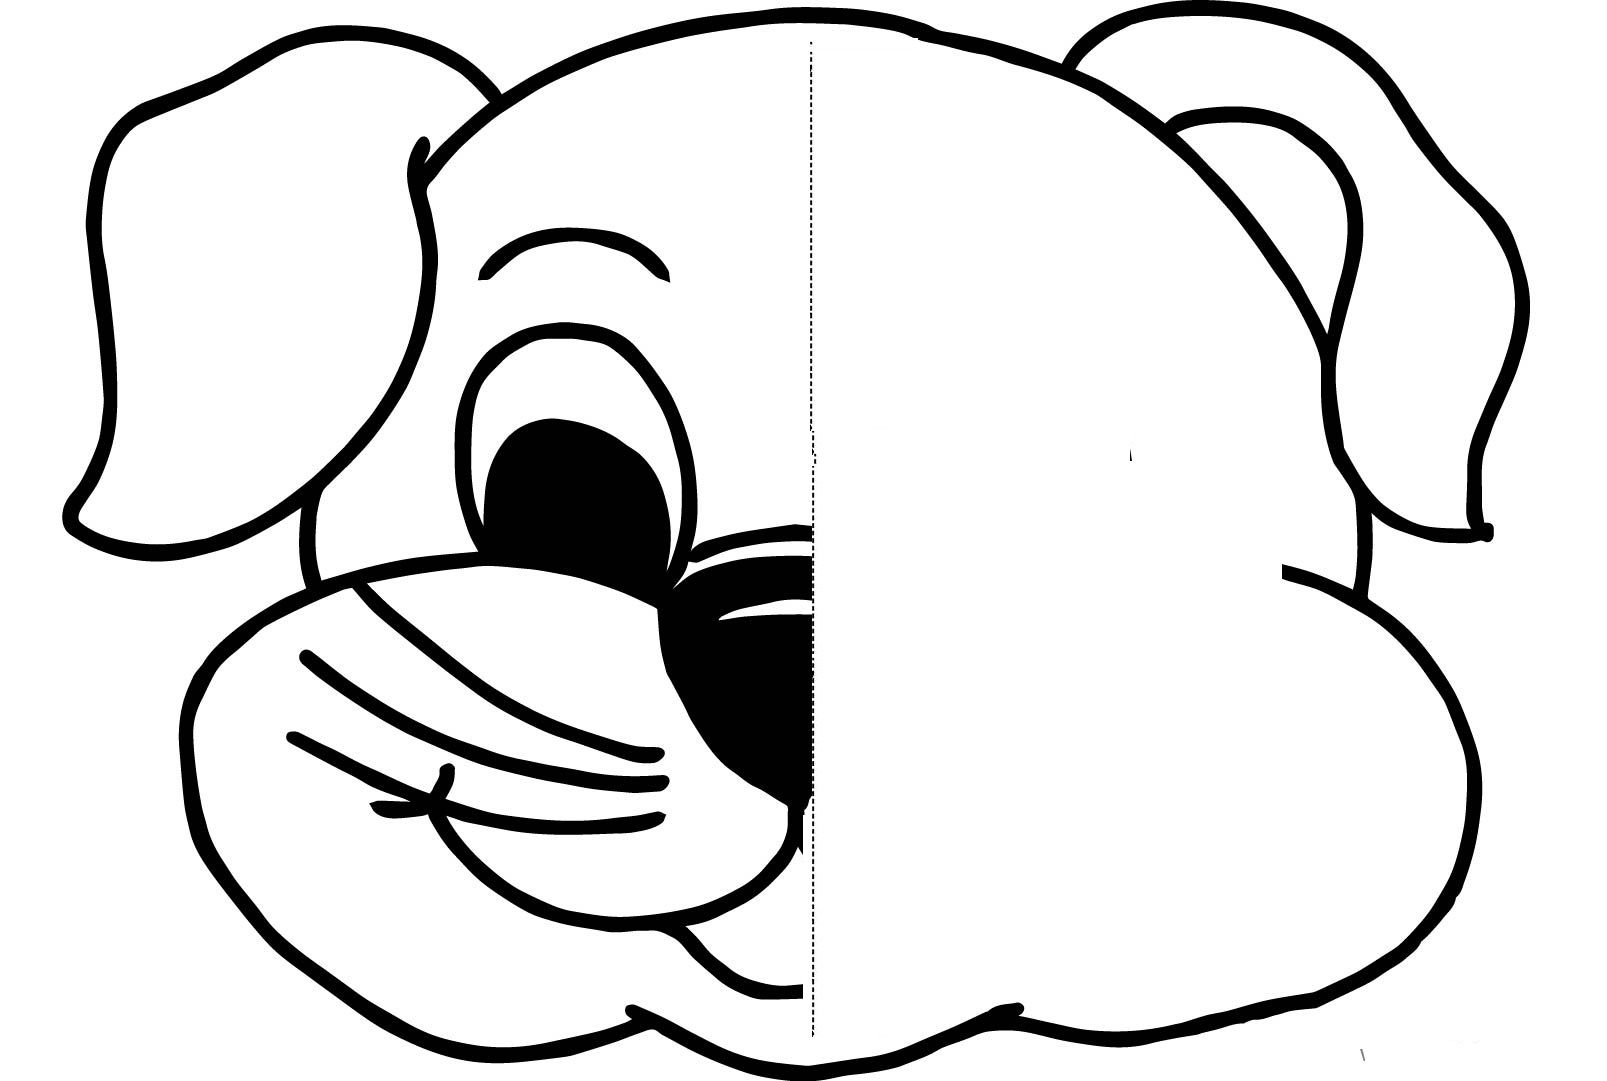 Dog Symmetry Activity Coloring Pages Crafts And Worksheets For Preschool Toddler And Kindergarten Symmetry Activities Drawing Kits Animal Pictures For Kids [ 1081 x 1607 Pixel ]